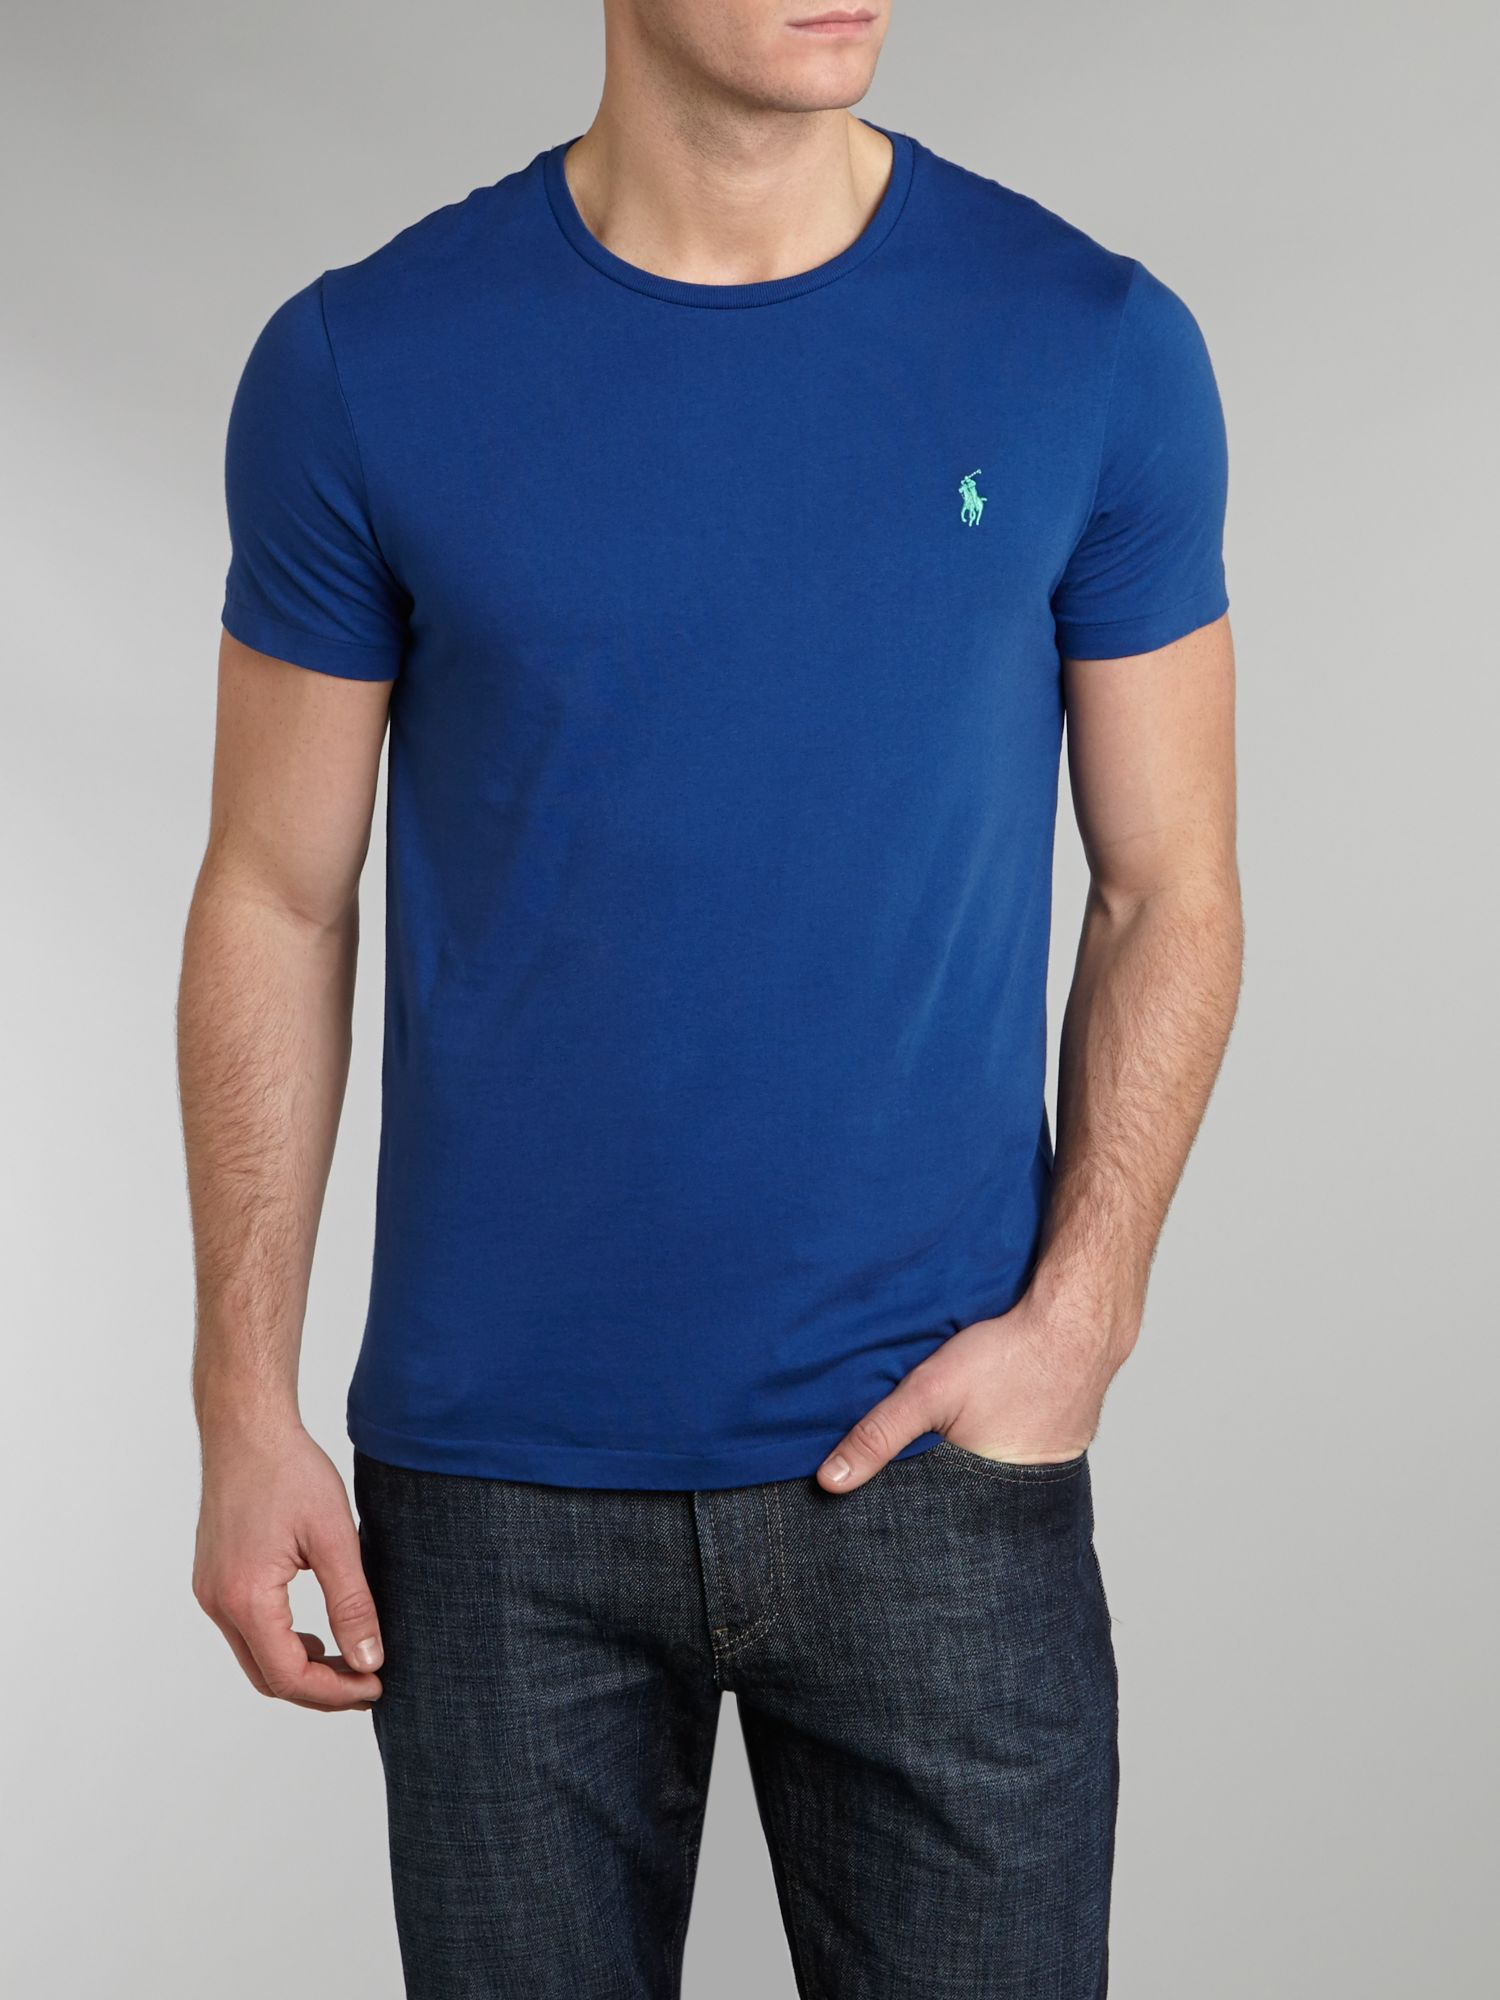 Lyst polo ralph lauren classic custom fit crew neck for Polo custom fit t shirts